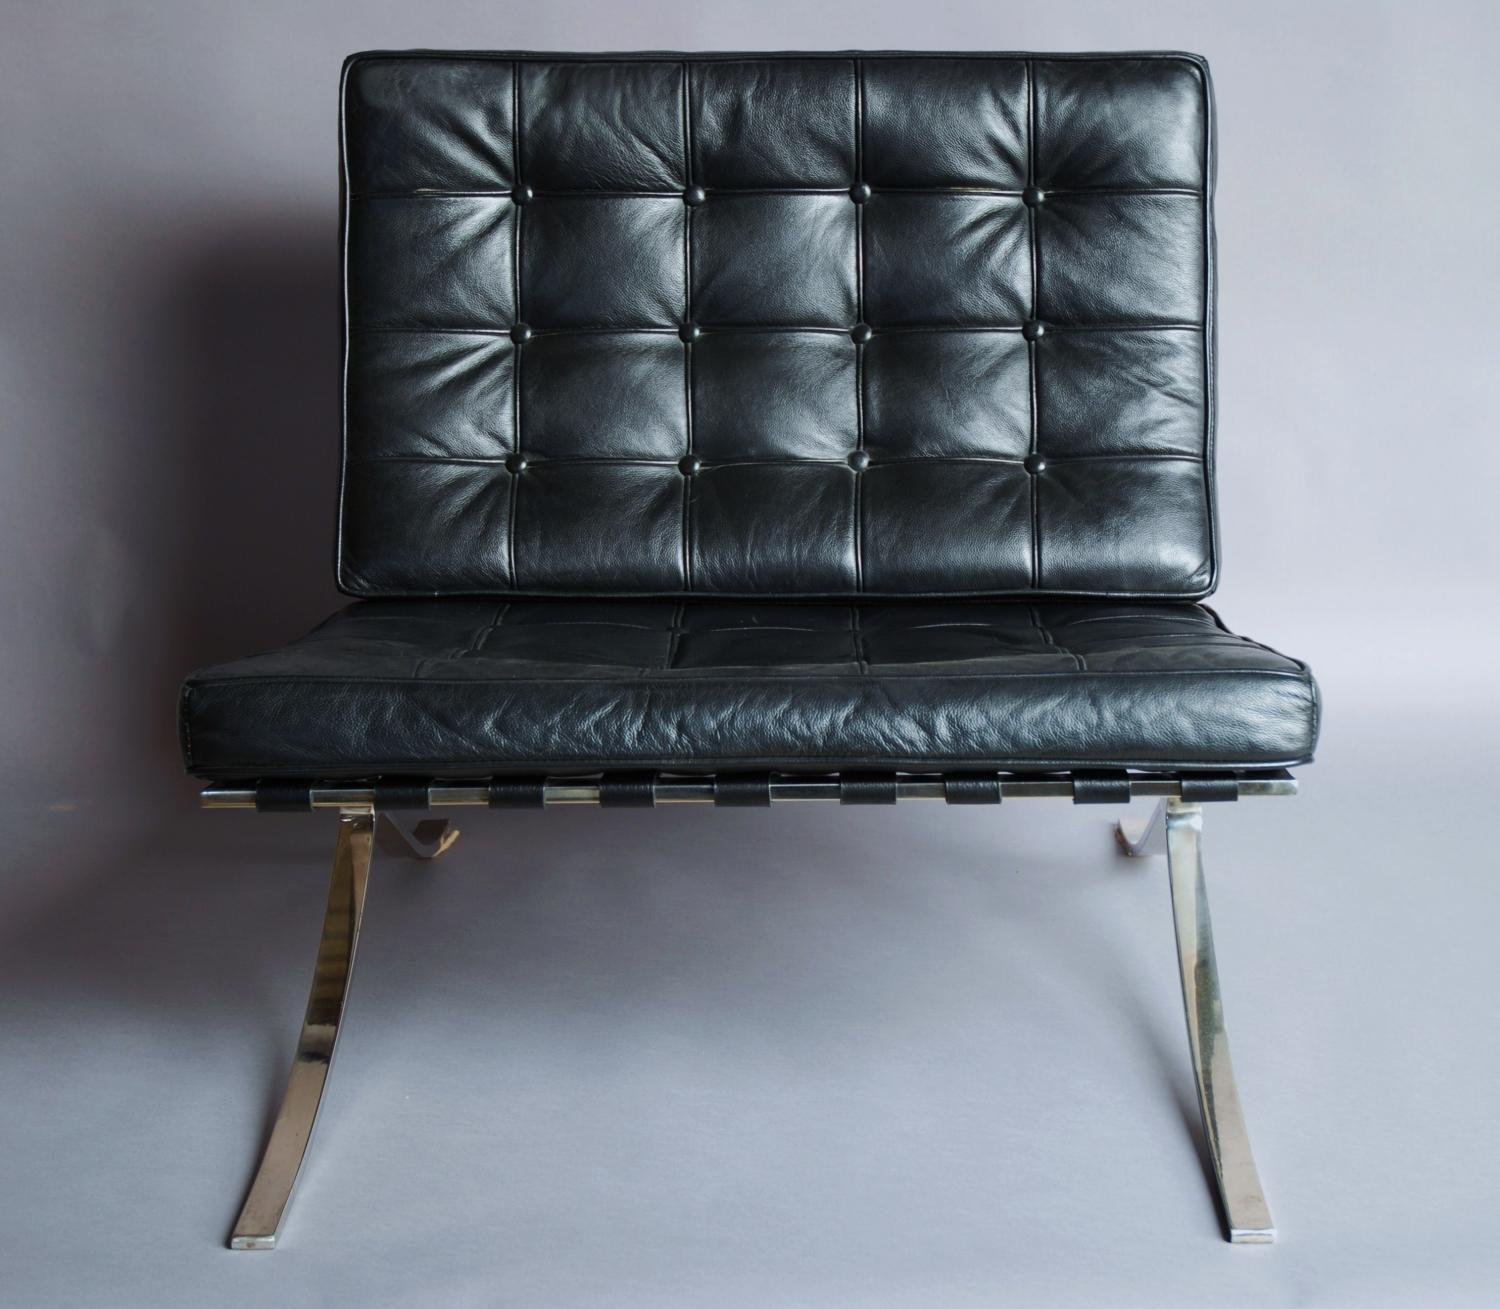 Barcelona Chair & stool in black leather in SOLD ARCHIVE